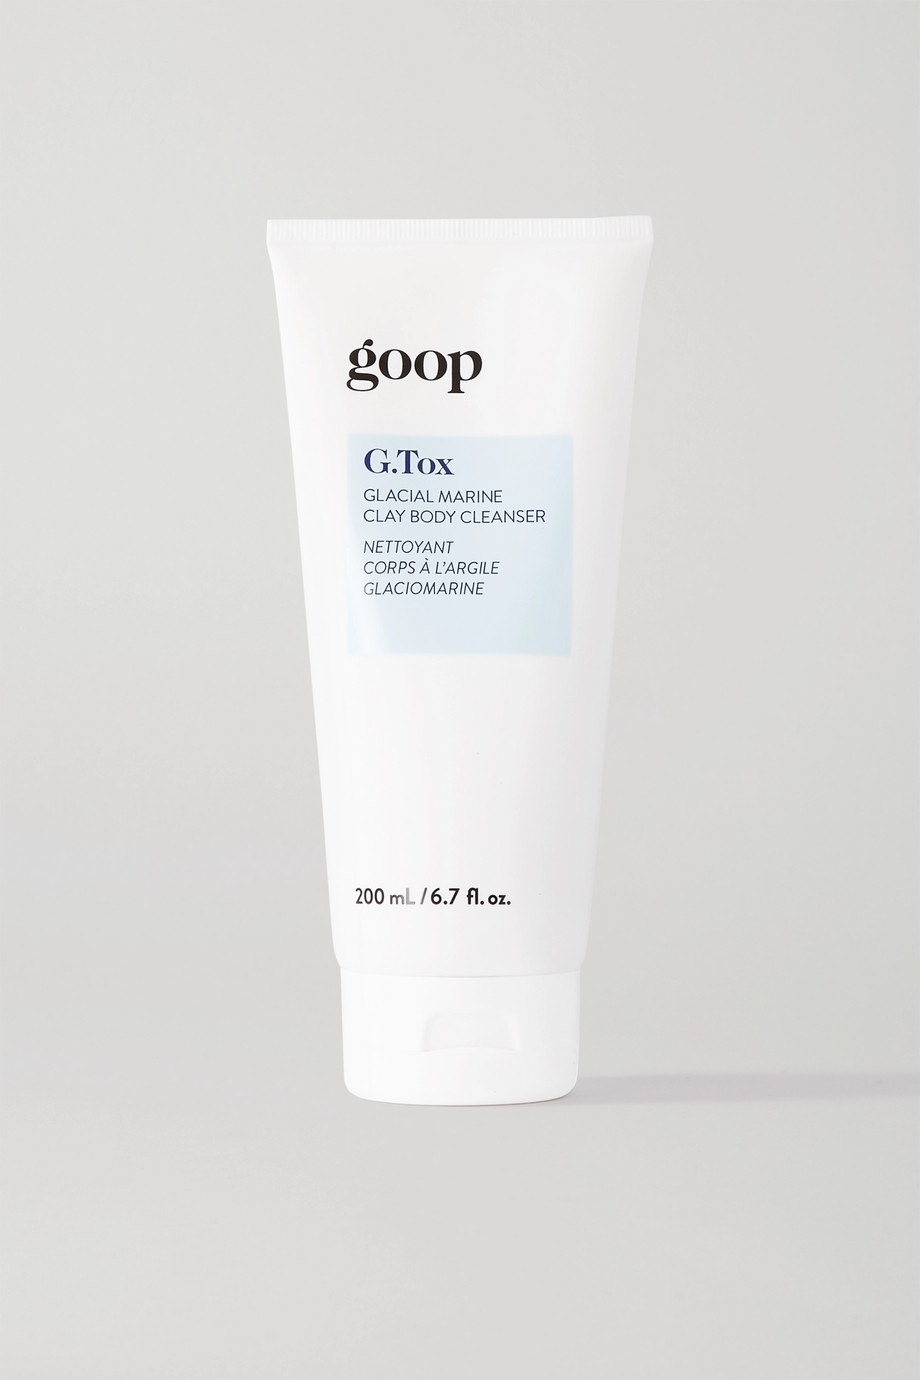 goop G.Tox Glacial Marine Clay Body Cleanser, 200ml